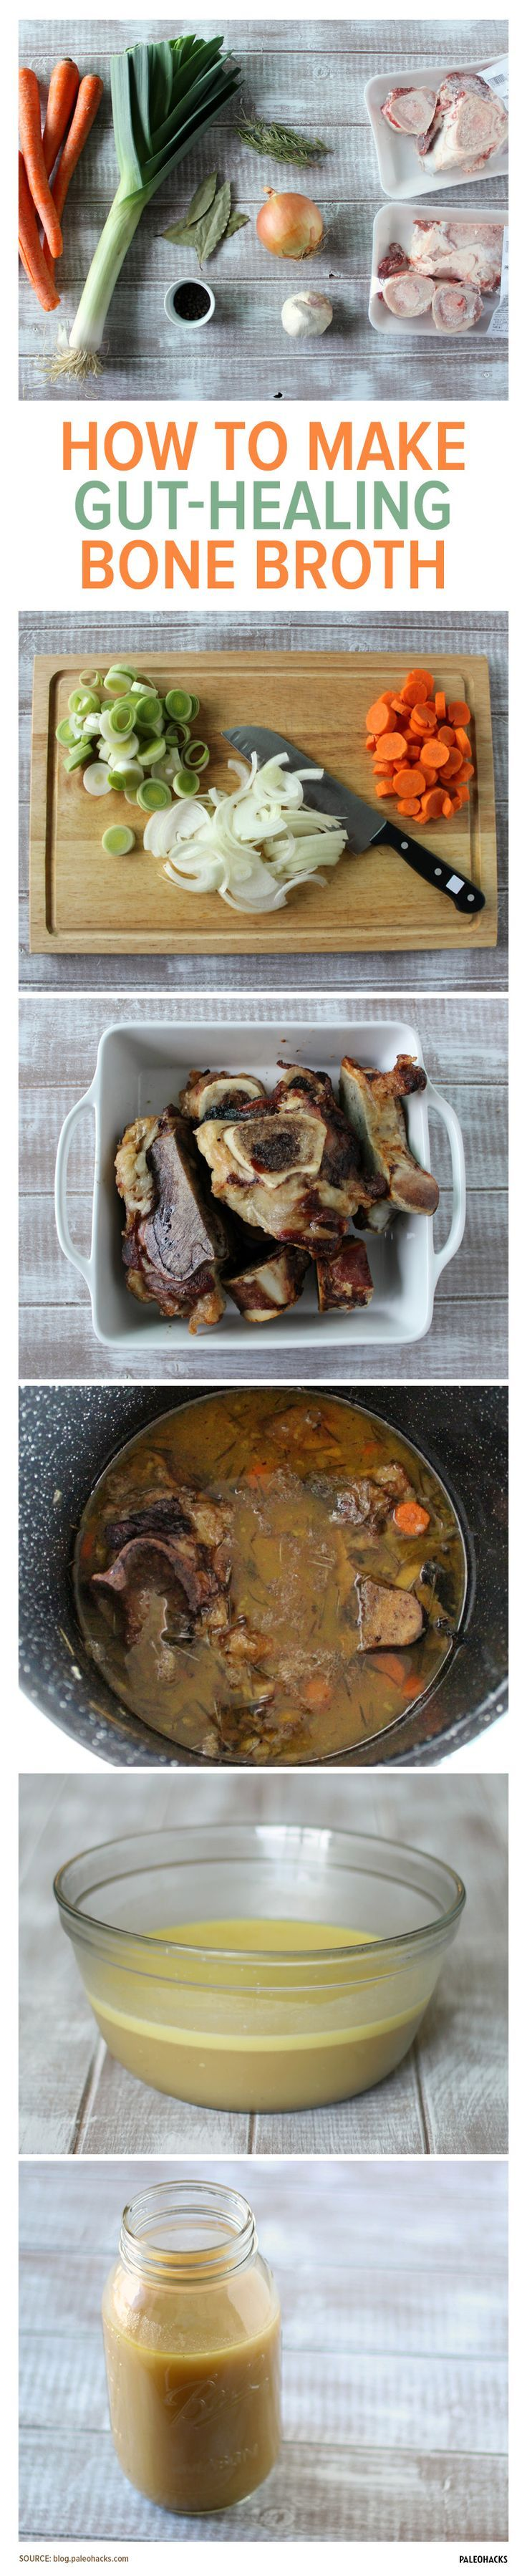 Looking for a savory bone broth recipe? Look no further: this bone broth recipe is the only one you will ever need. The recipe packs a thick, gelatinous broth filled with minerals and healing properties that many cultures have believed in for thousands of years.